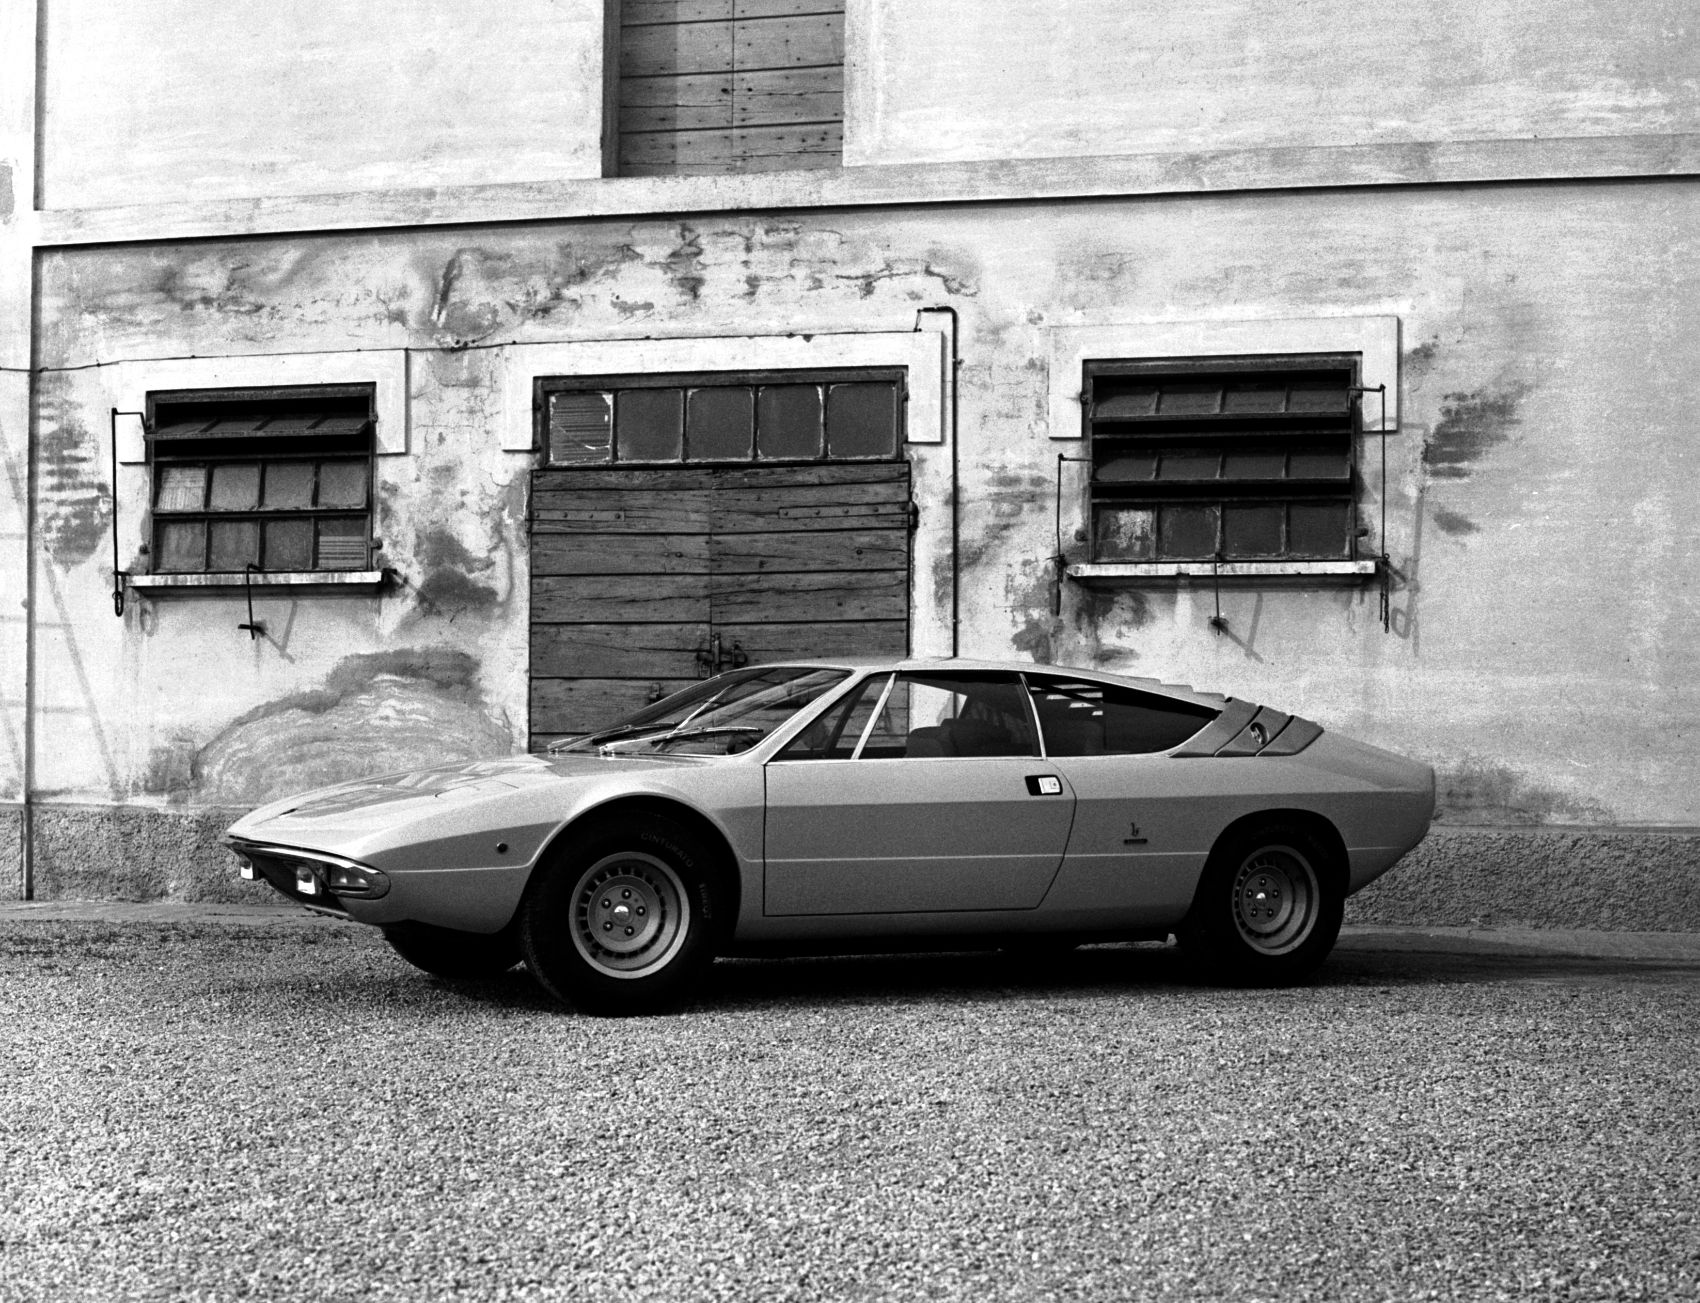 Enjoy This Gallery of Lamborghini Urraco Photos! This Car is Rare & Beautiful!